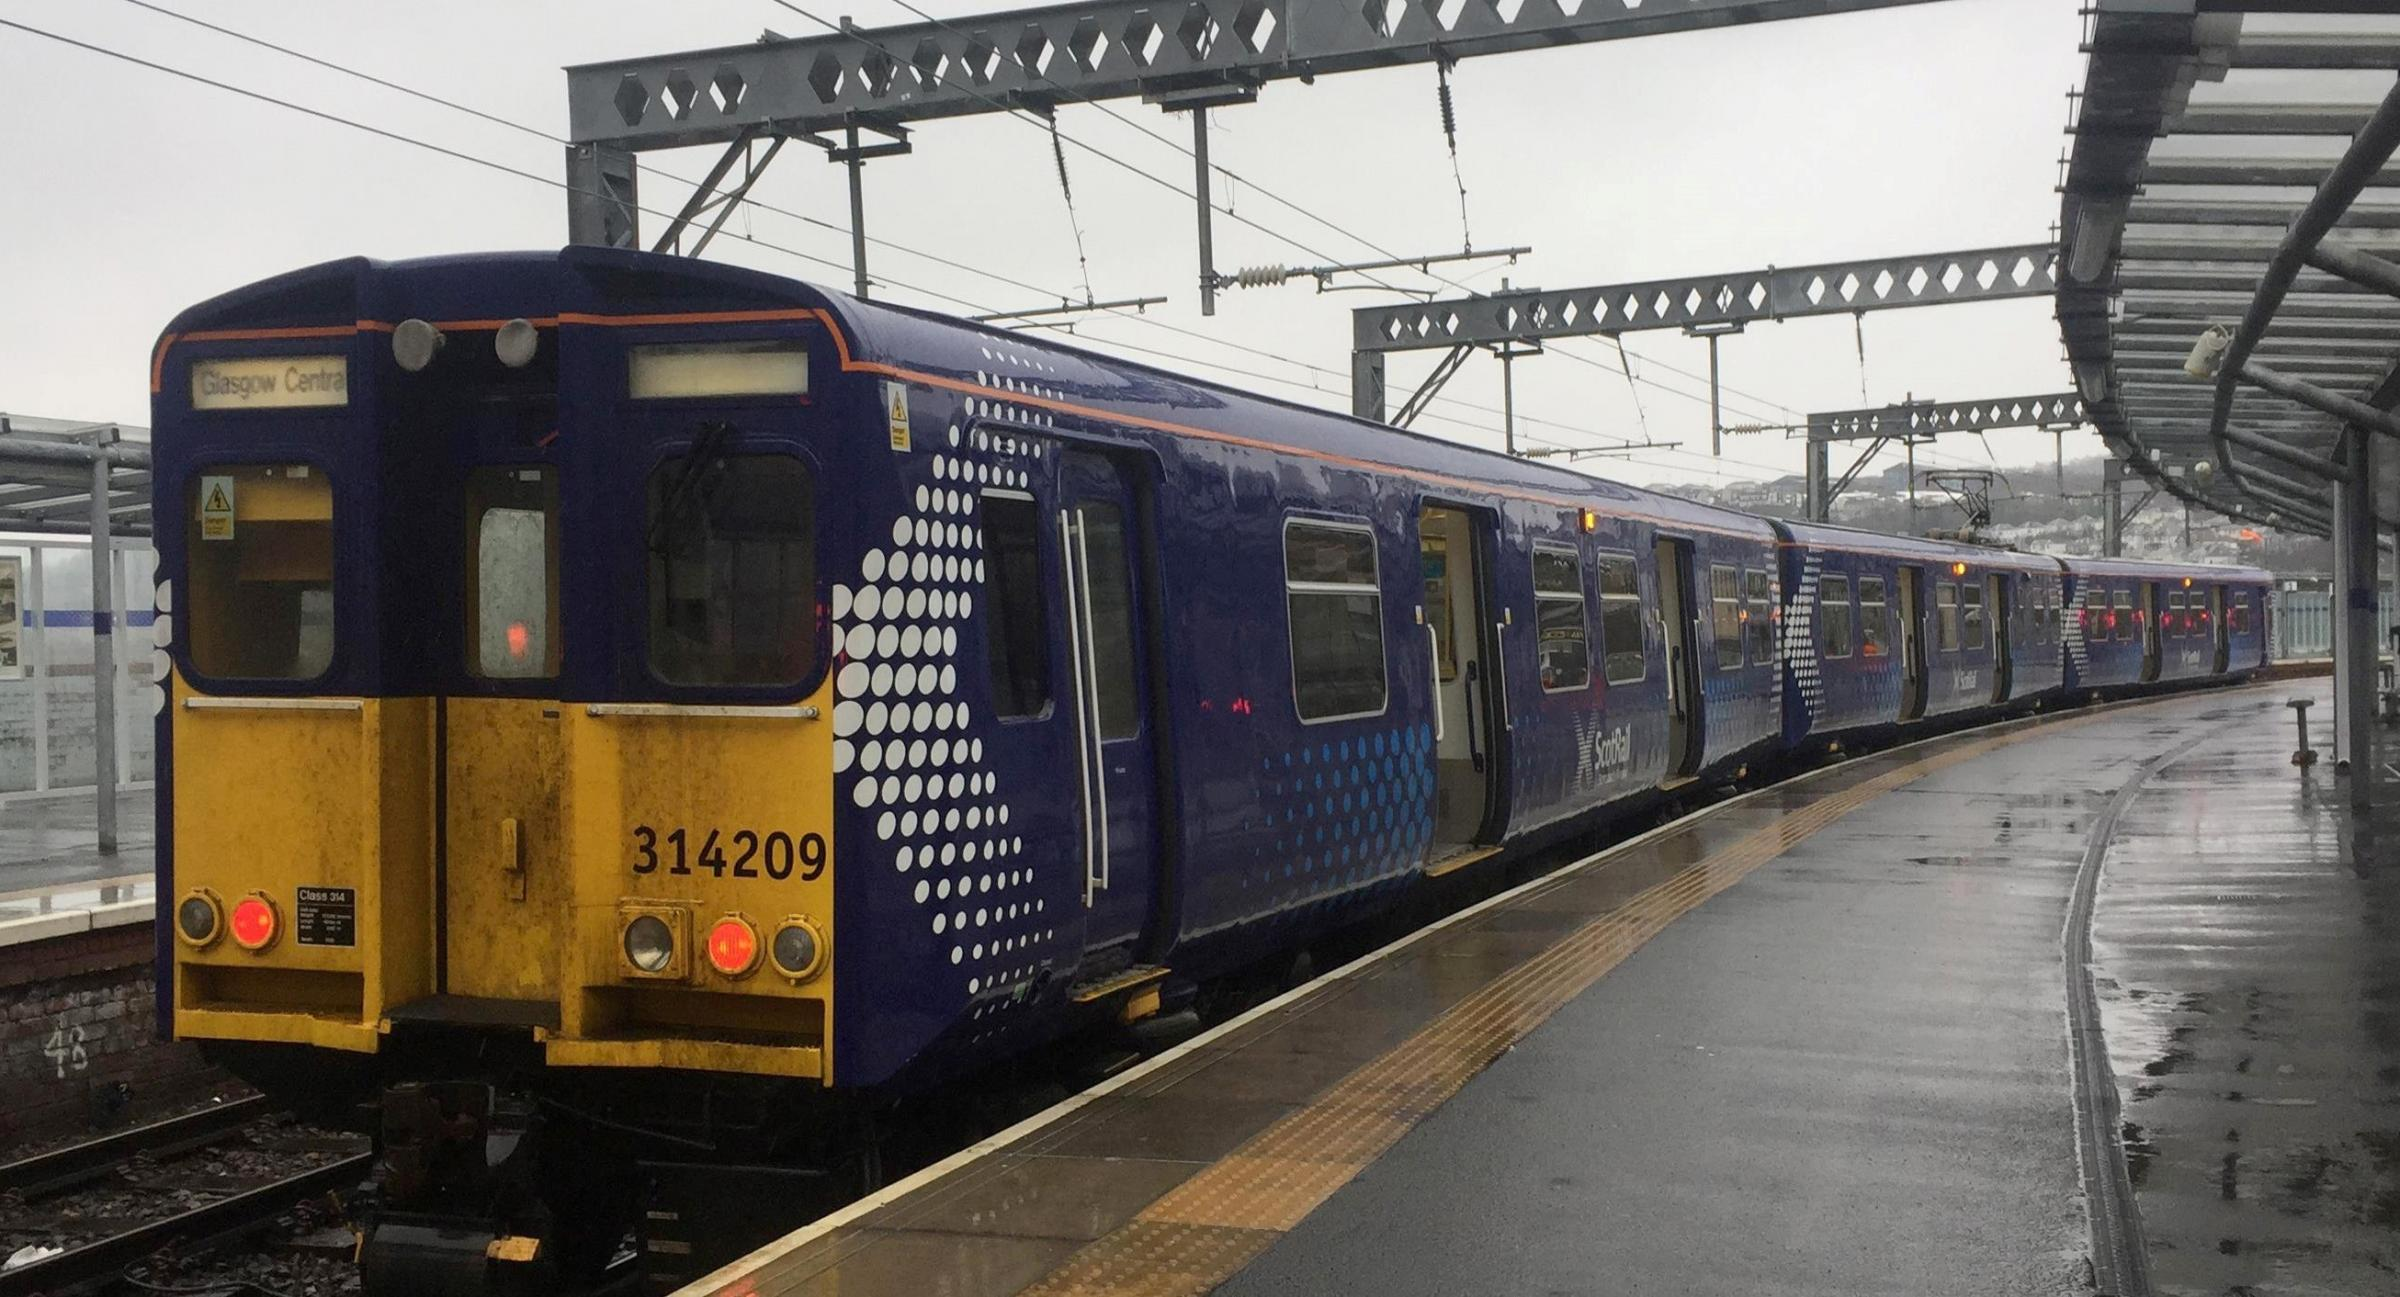 Old Class 314 rolling stock at Gourock train station which is one of many in use on the Inverclyde lines. Local Labour activist Alan Holliday has launched a petition for them to be removed following public and political backlash.